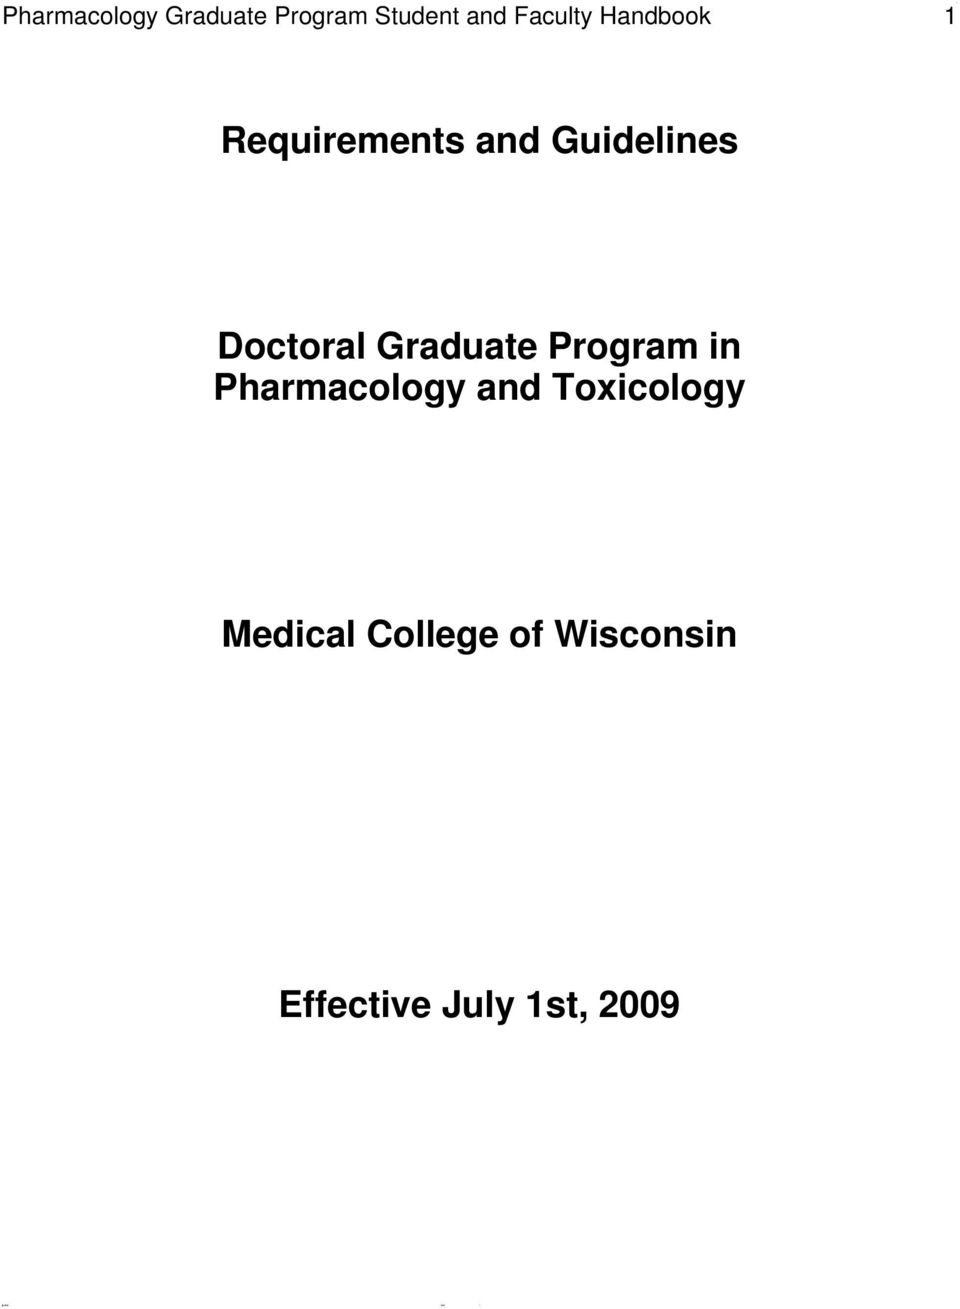 Doctoral Graduate Program in Pharmacology and